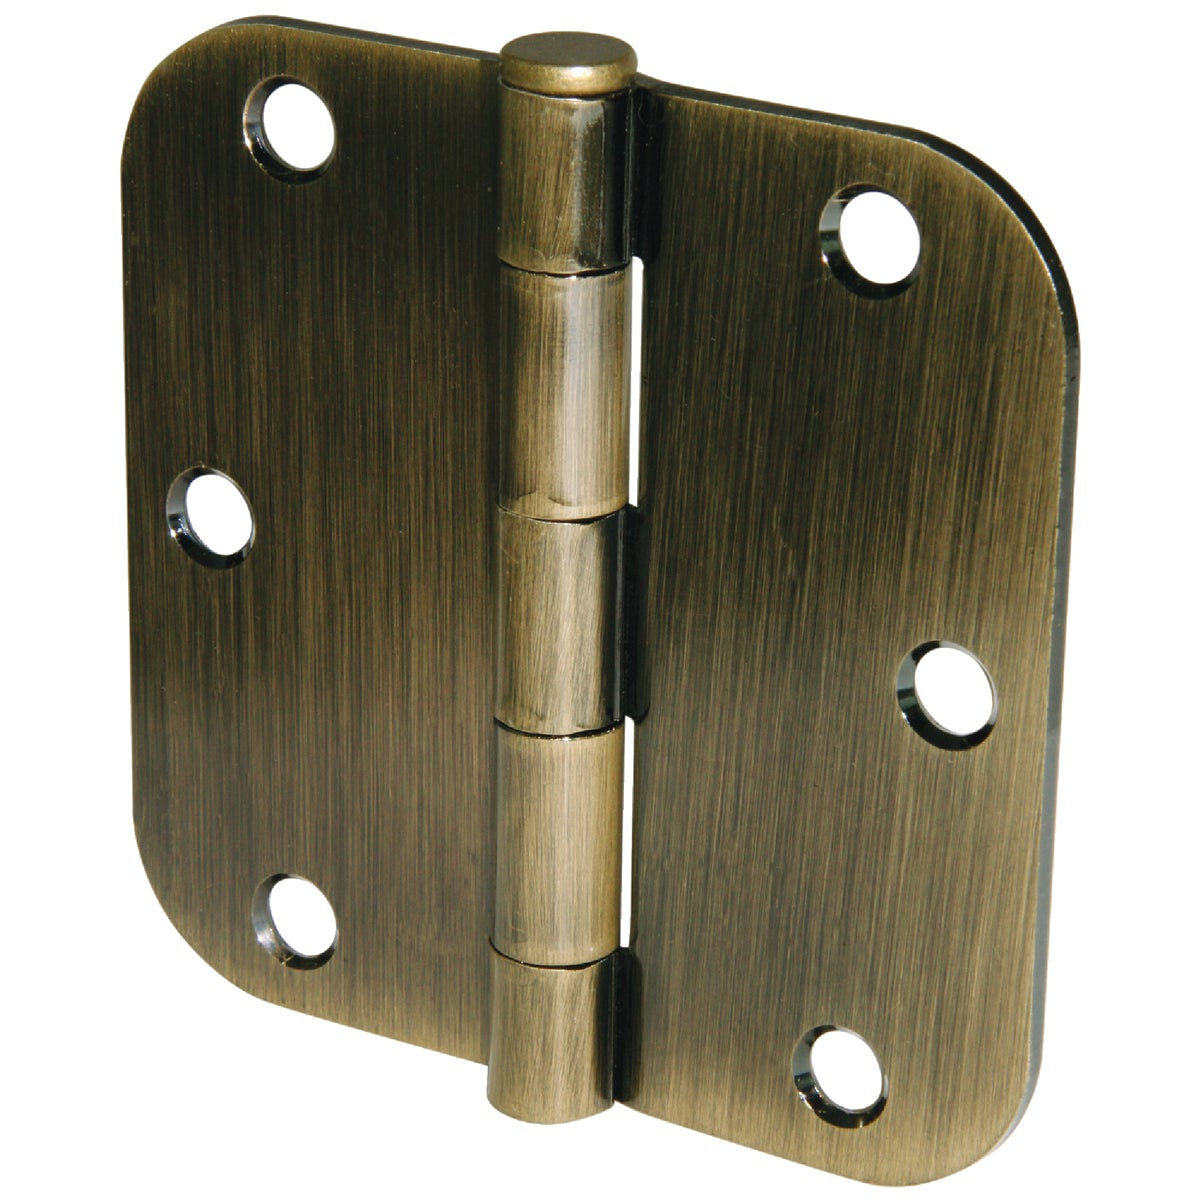 "3.5"" 5/8RAD AB 3PK HINGE - 61743 by Ultra Hardware"